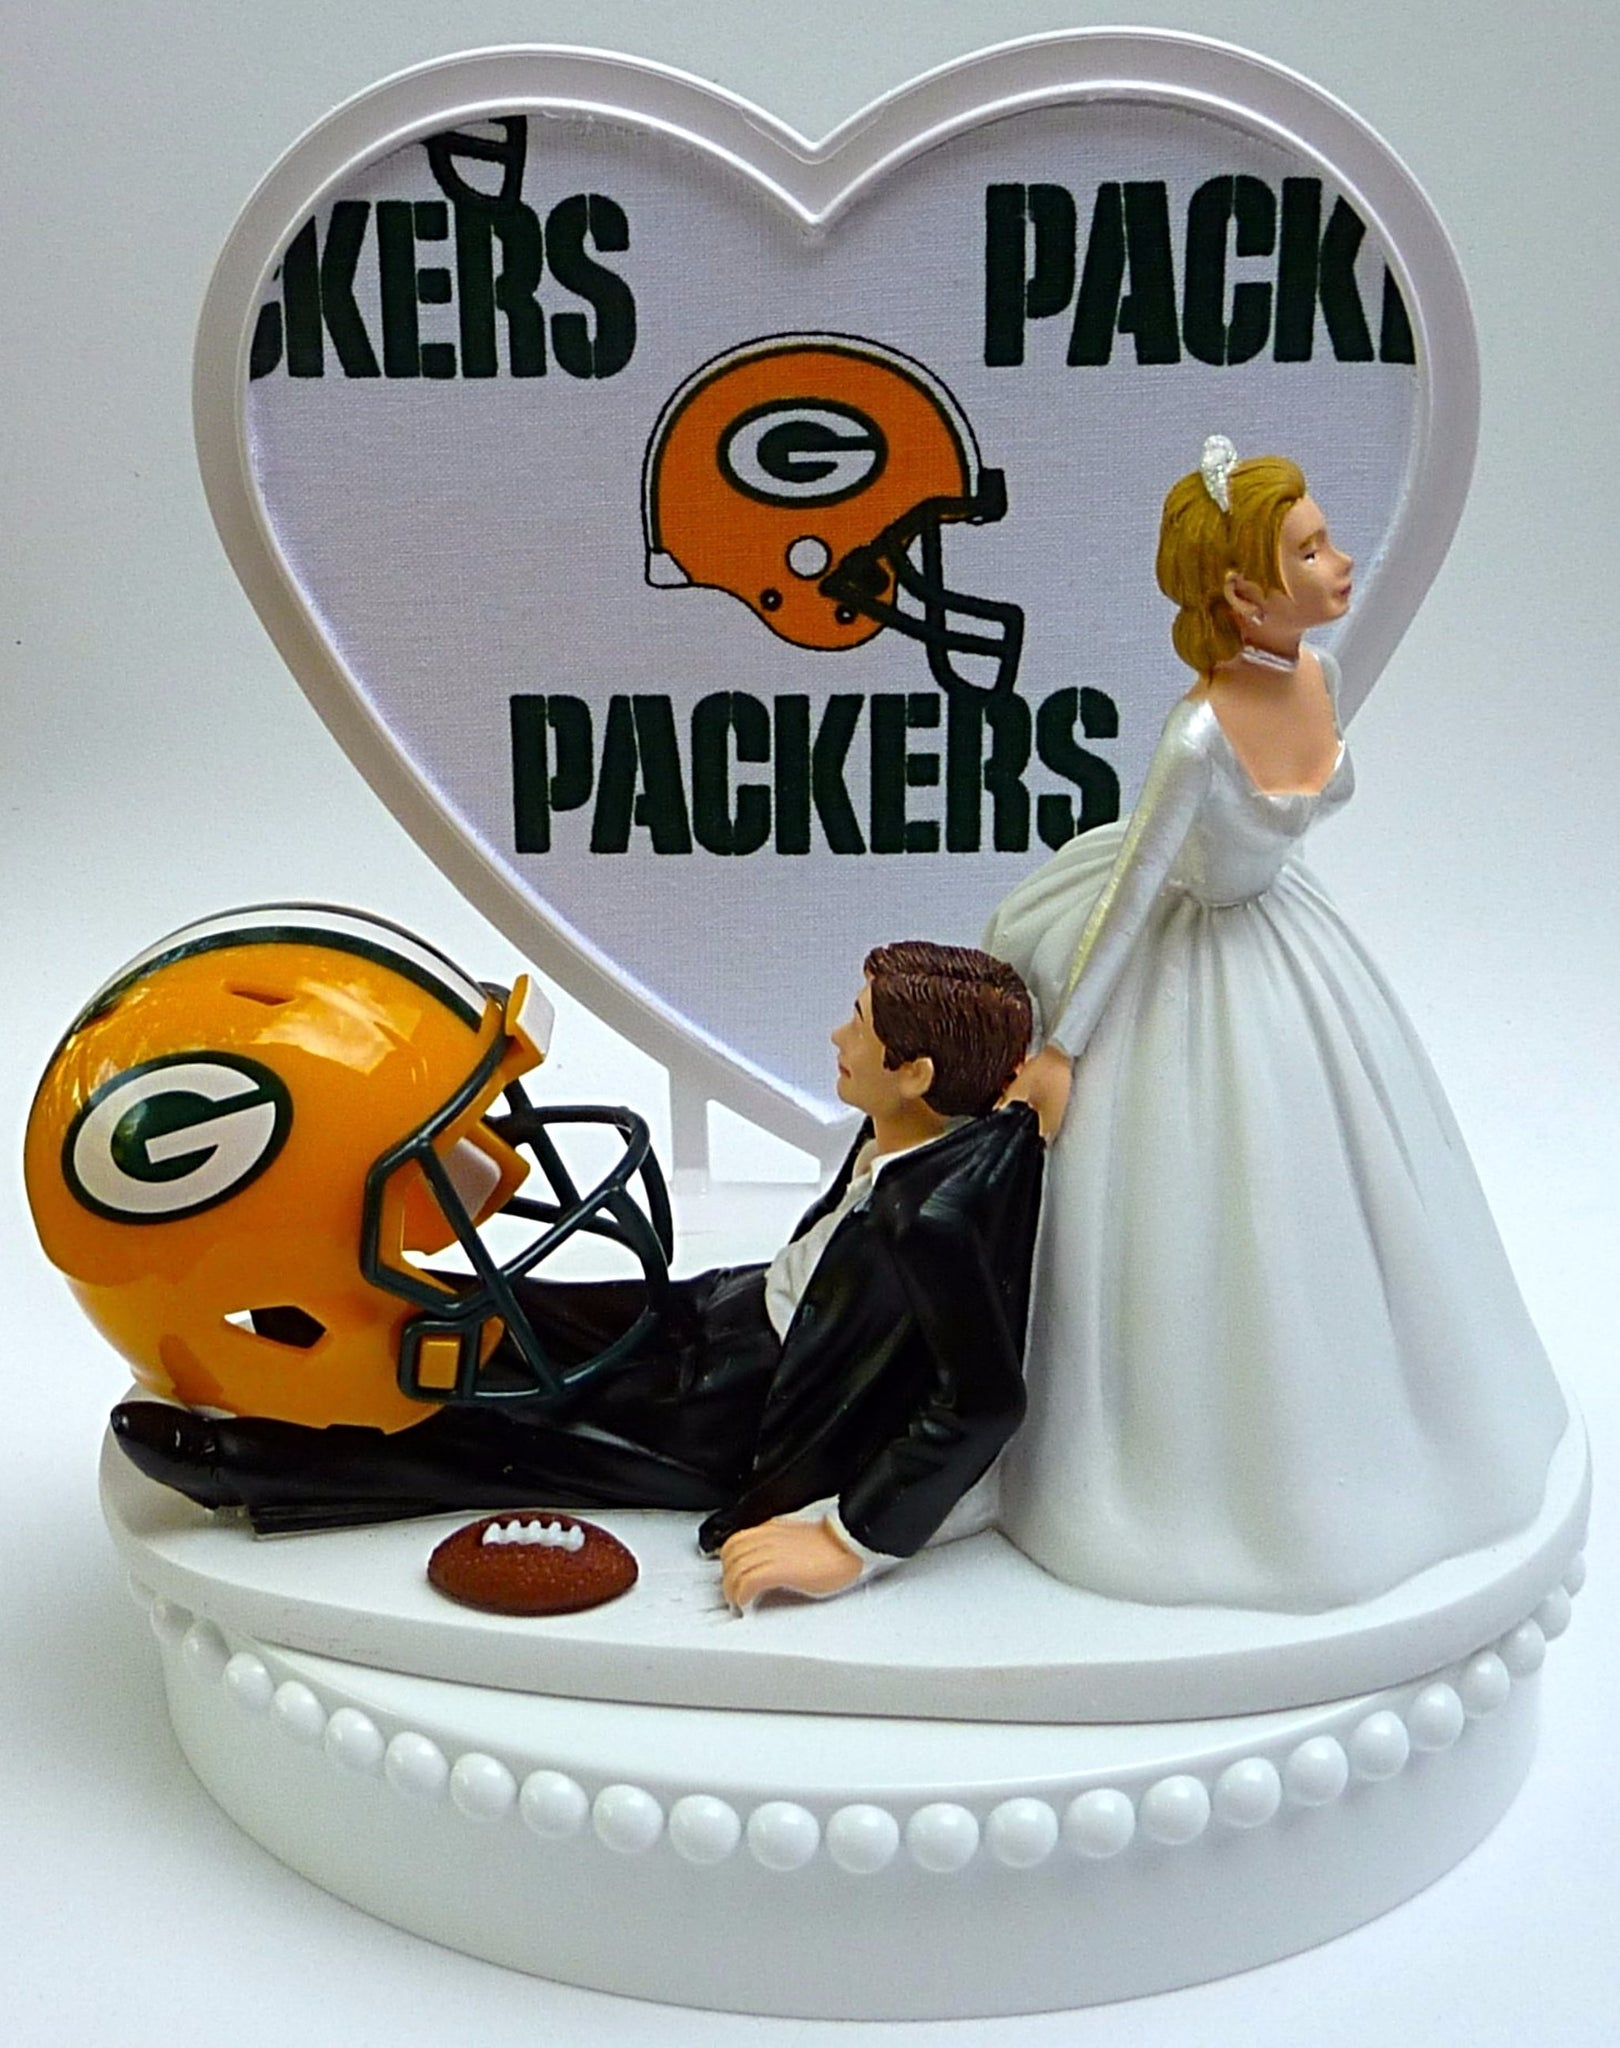 Green Bay Packers wedding cake topper sports fan fun FunWeddingThings.com reception football NFL cheese